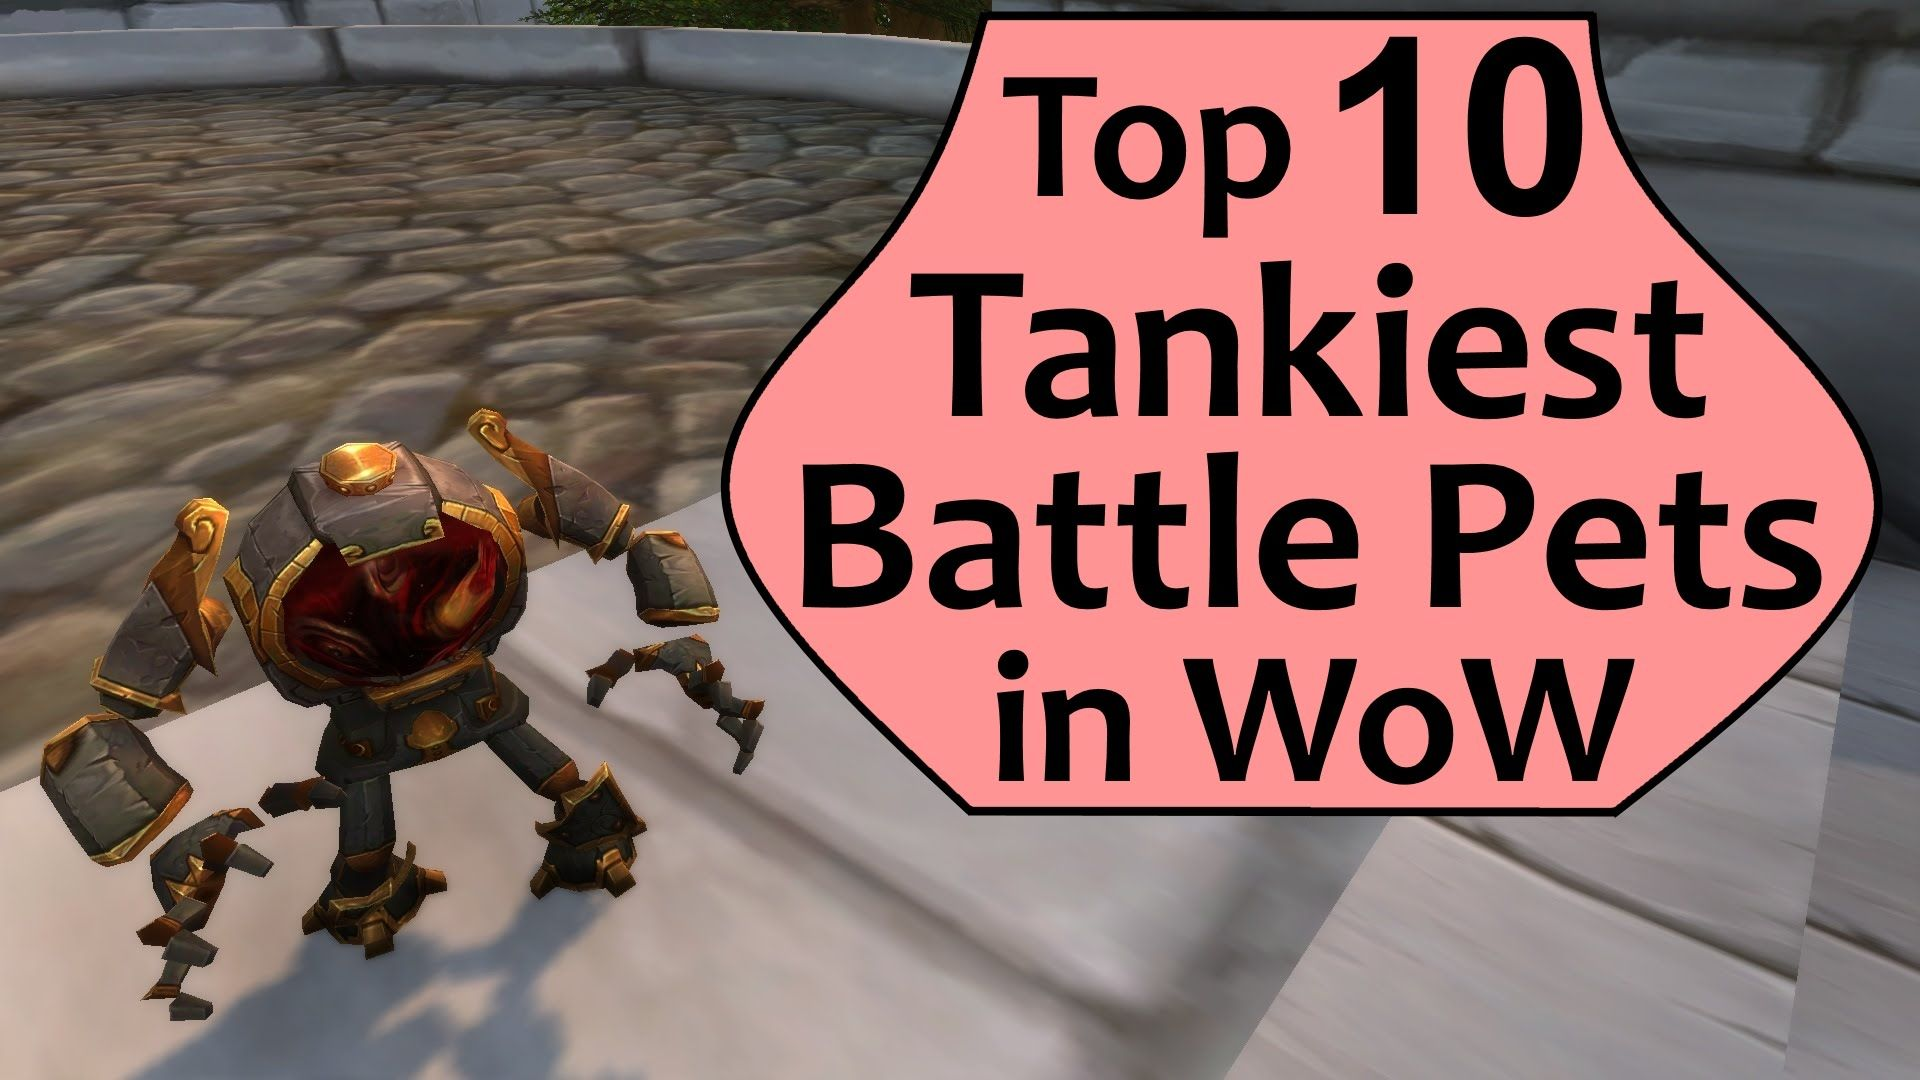 Top 10 Tankiest Battle Pets in World of Warcraft (With